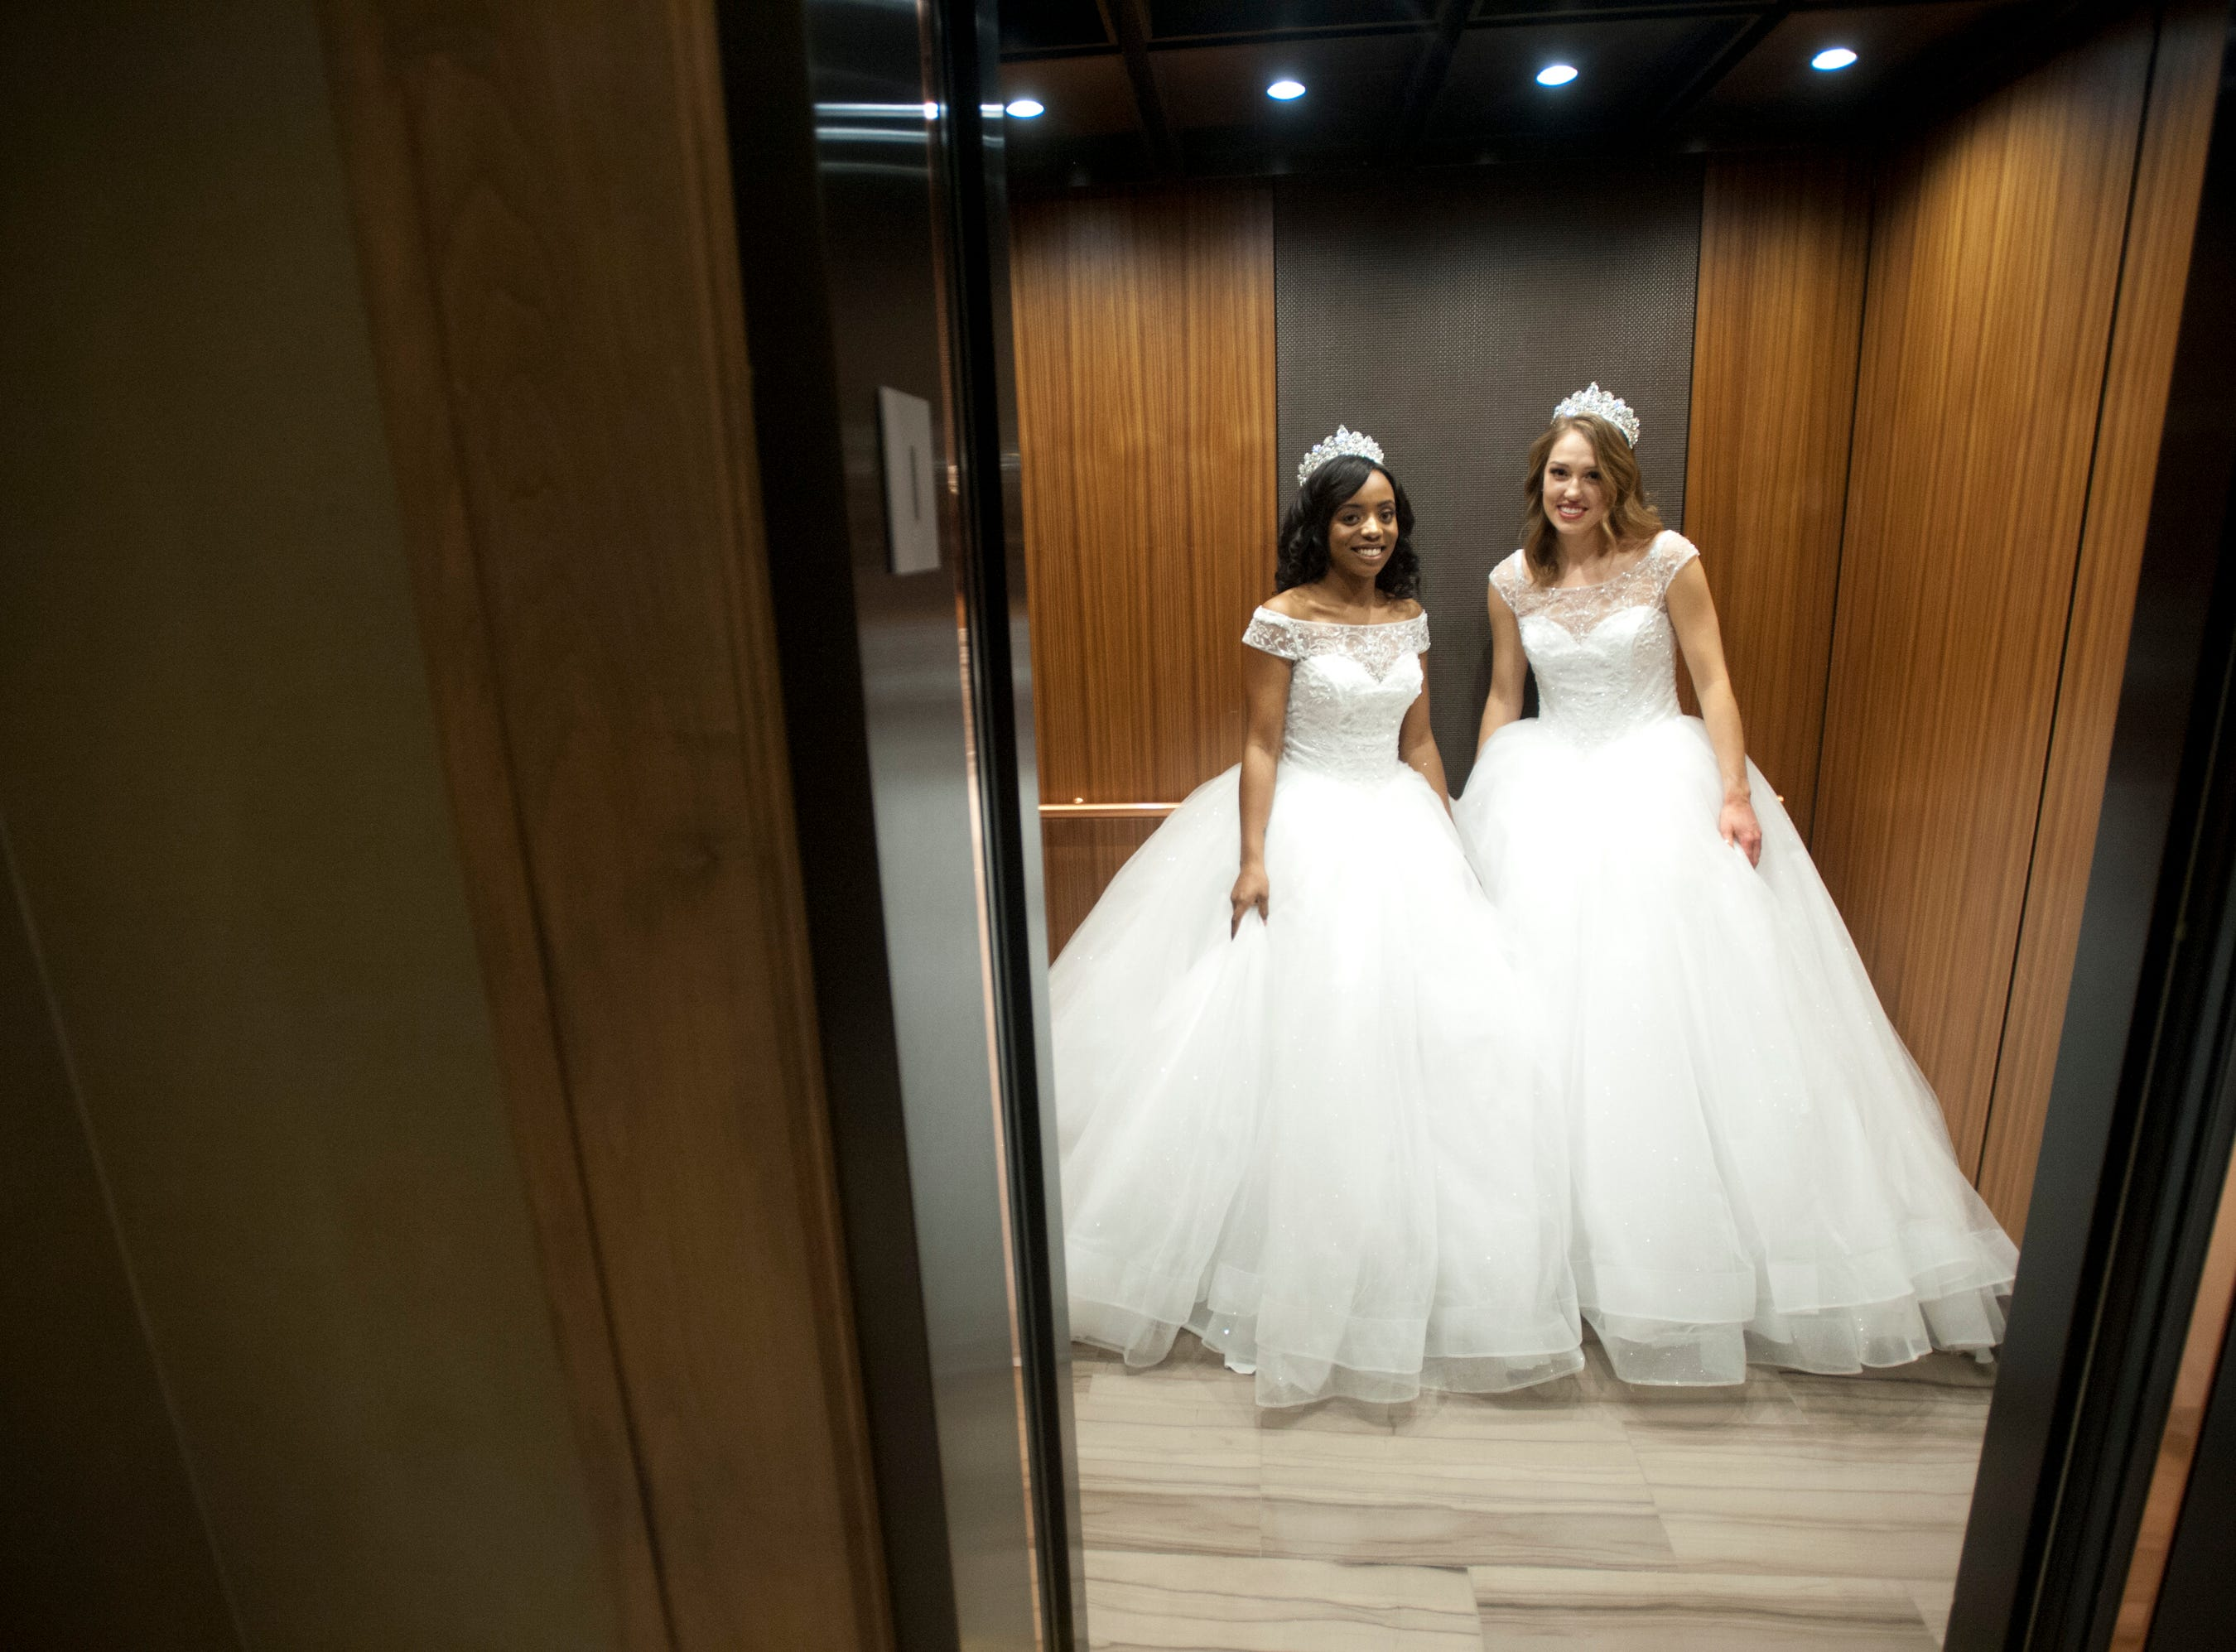 Going up in the elevator of the Omni Louisville Hotel are Kentucky Derby Festival Princesses Brittany Patillo, left, and Elizabeth Seewer, right.  Patillo, 22, from the west end of Louisville, is a University of Louisville senior majoring in theater arts and Seewer, 23, of the Springhurst neighborhood in Louisville, is in Bellarmine University's graduate physical therapy doctoral program. 06 January 2019